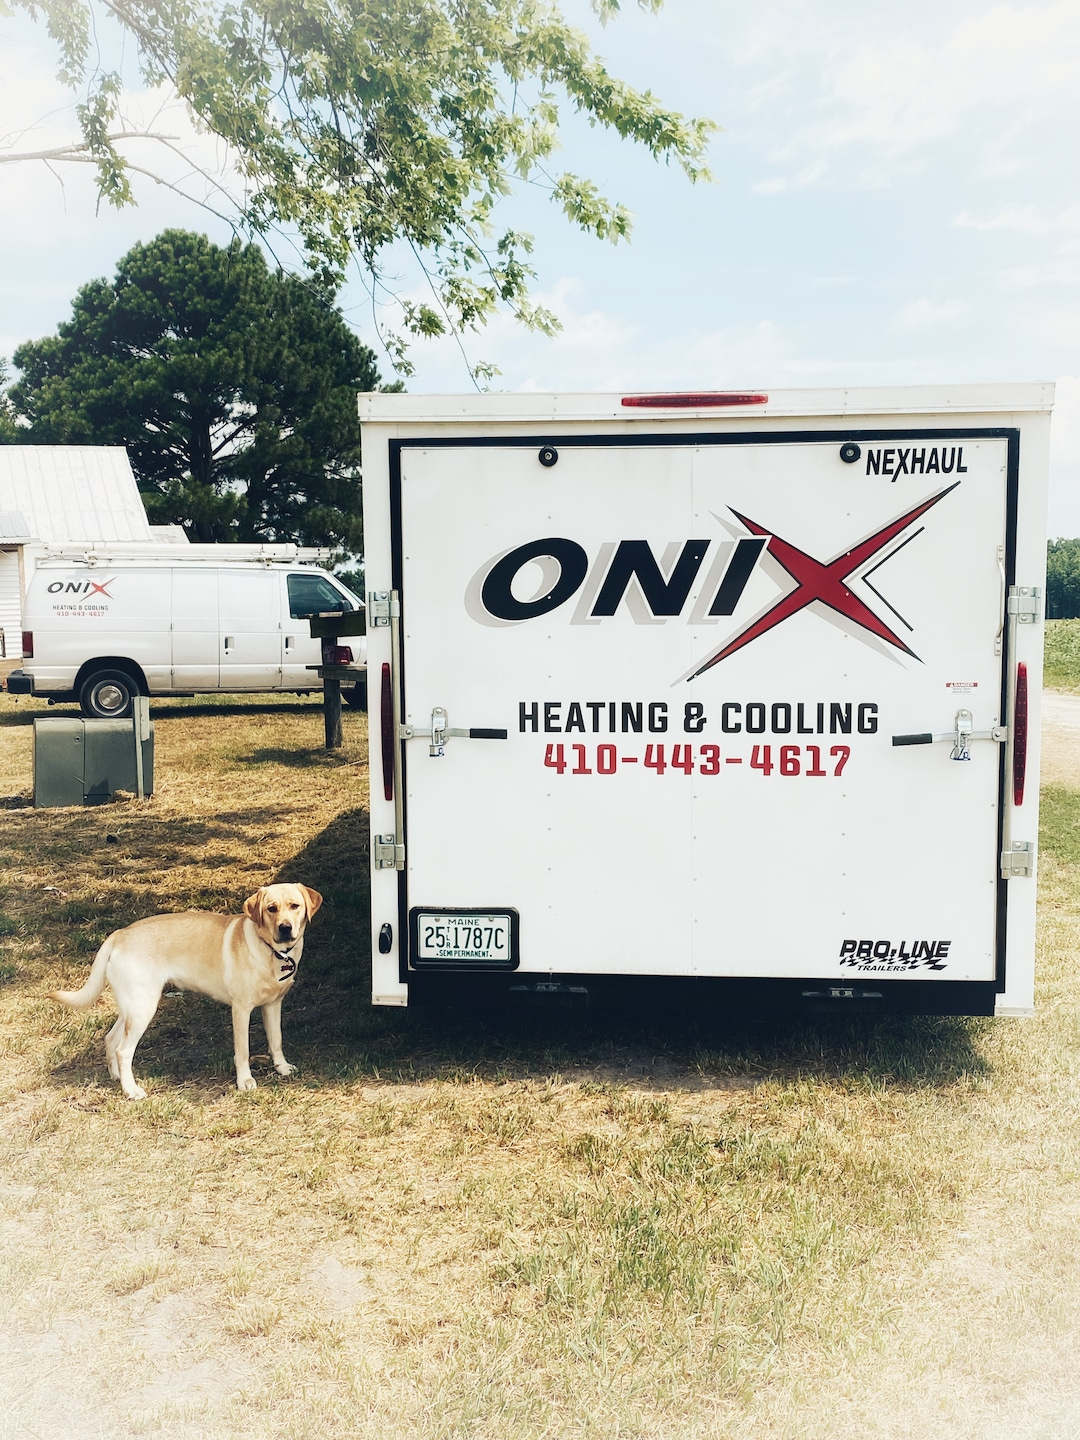 Onix Heating & Cooling